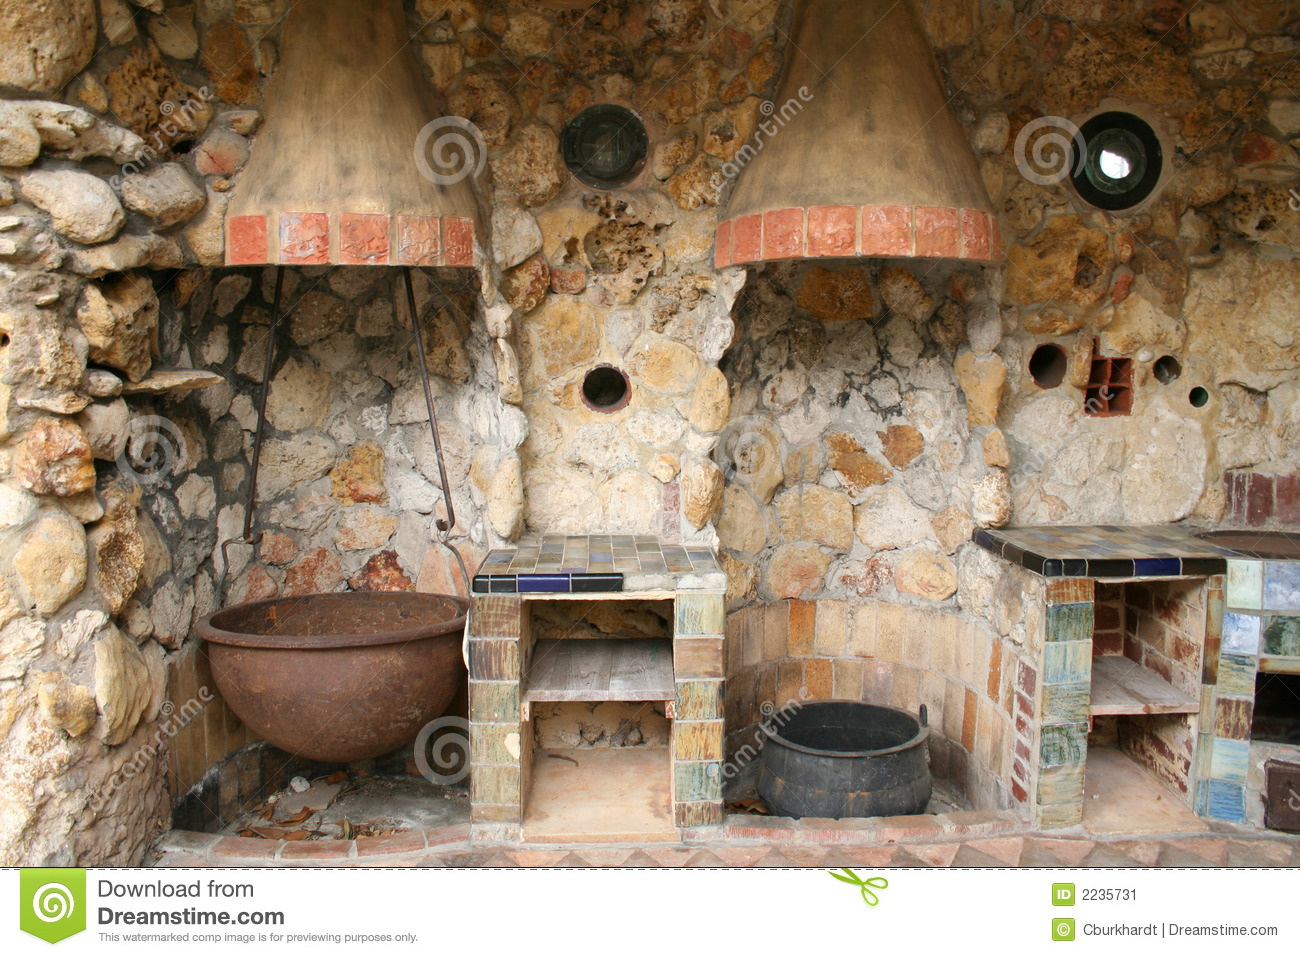 Old pioneer style outdoor kitchen with iron and copper pots and stone ...